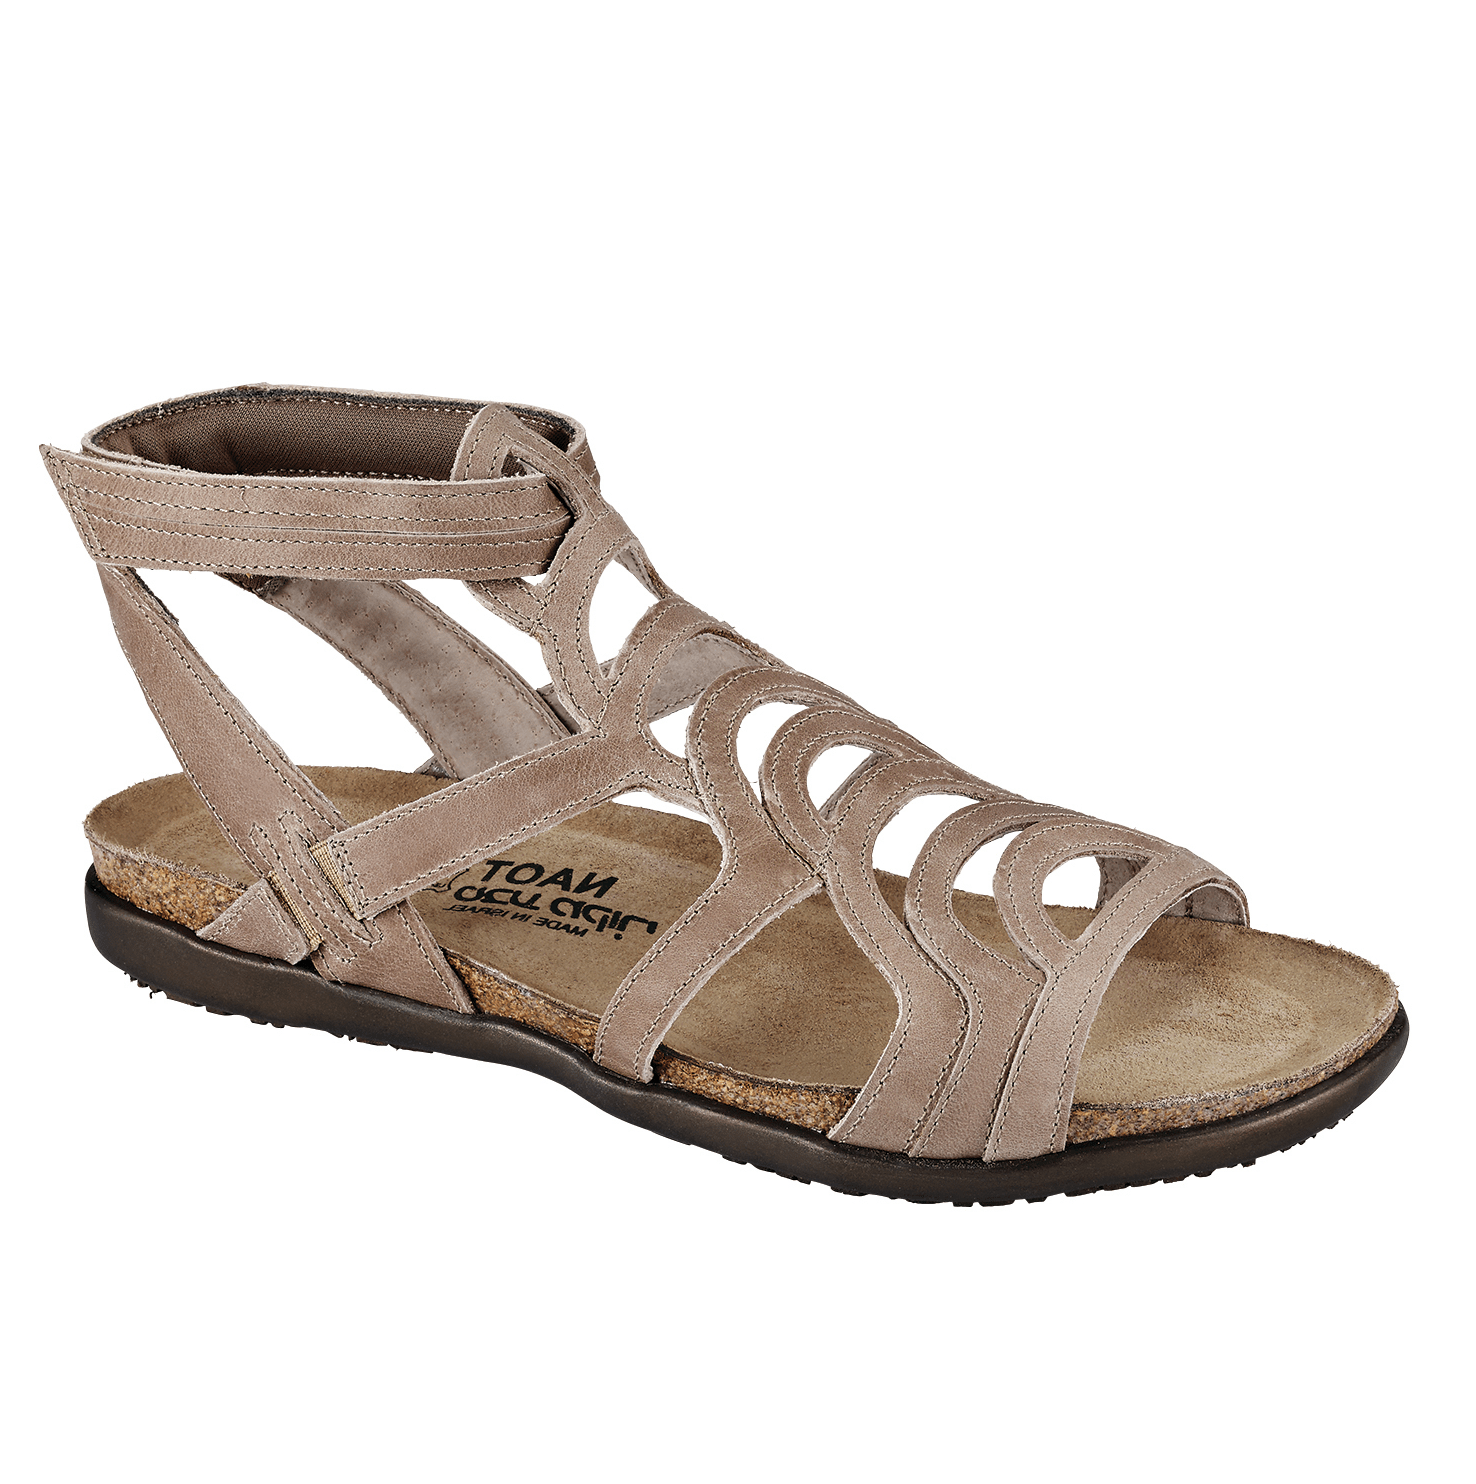 Naot Sara Women's Leather Cork Gladiator Sandal Shoe